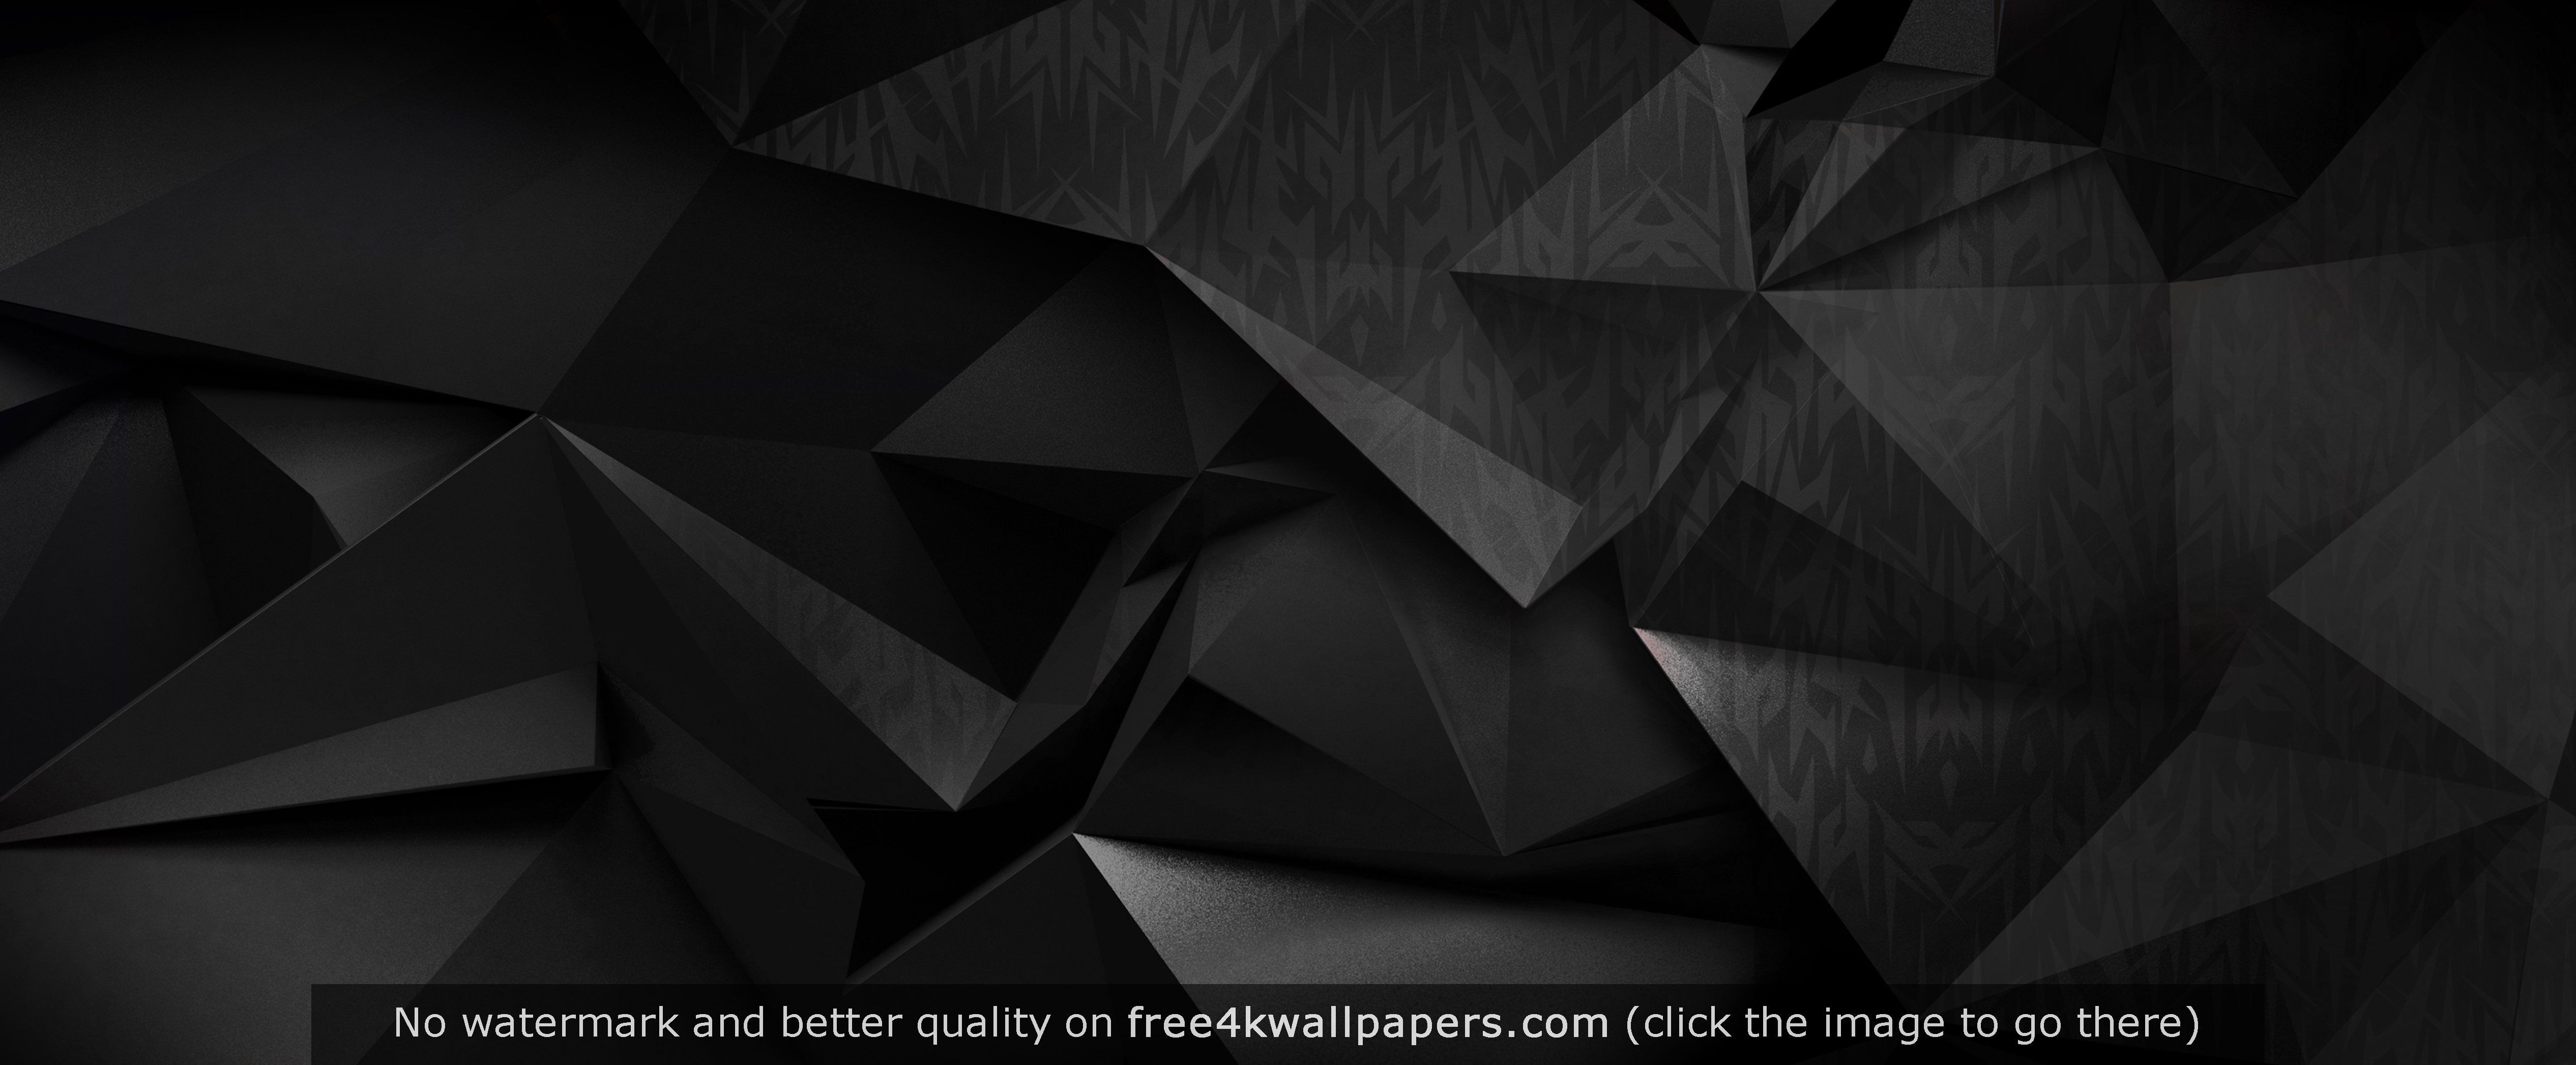 Acer Backgrounds Wallpapers Background Hd Wallpaper Android Wallpaper Black Colorful Wallpaper